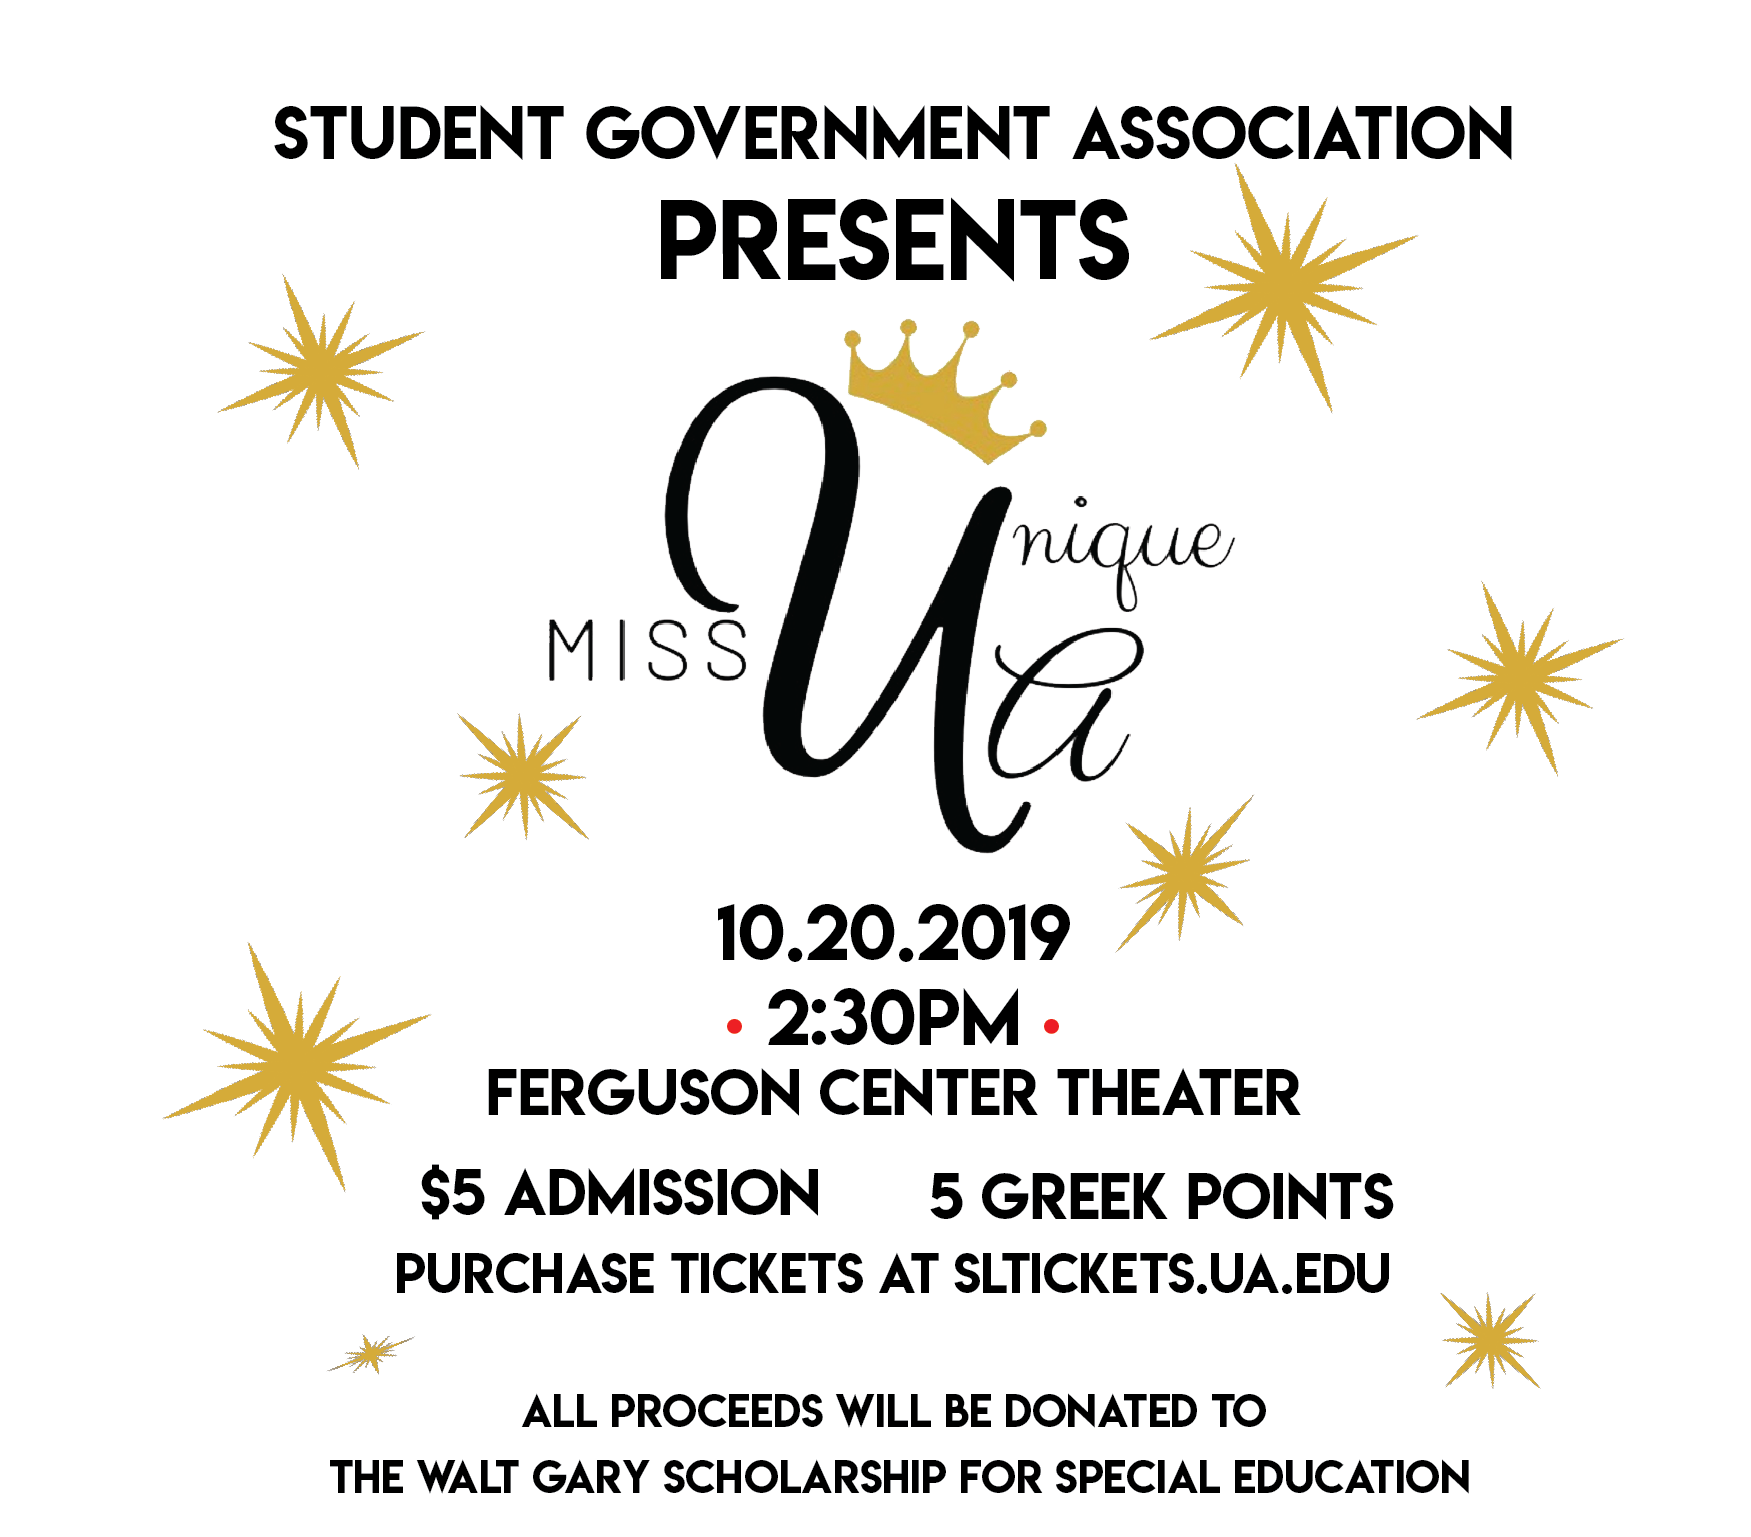 Student Government Association presents Miss Unique UA on October 20th, 2019 at 2:30PM in the Ferguson Center Theatre. $5 Admission and 5 Greek Points. Purchase Tickets at sltickets.ua.edu All proceeds will be donated to the Walt Gary Scholarship for Special Education